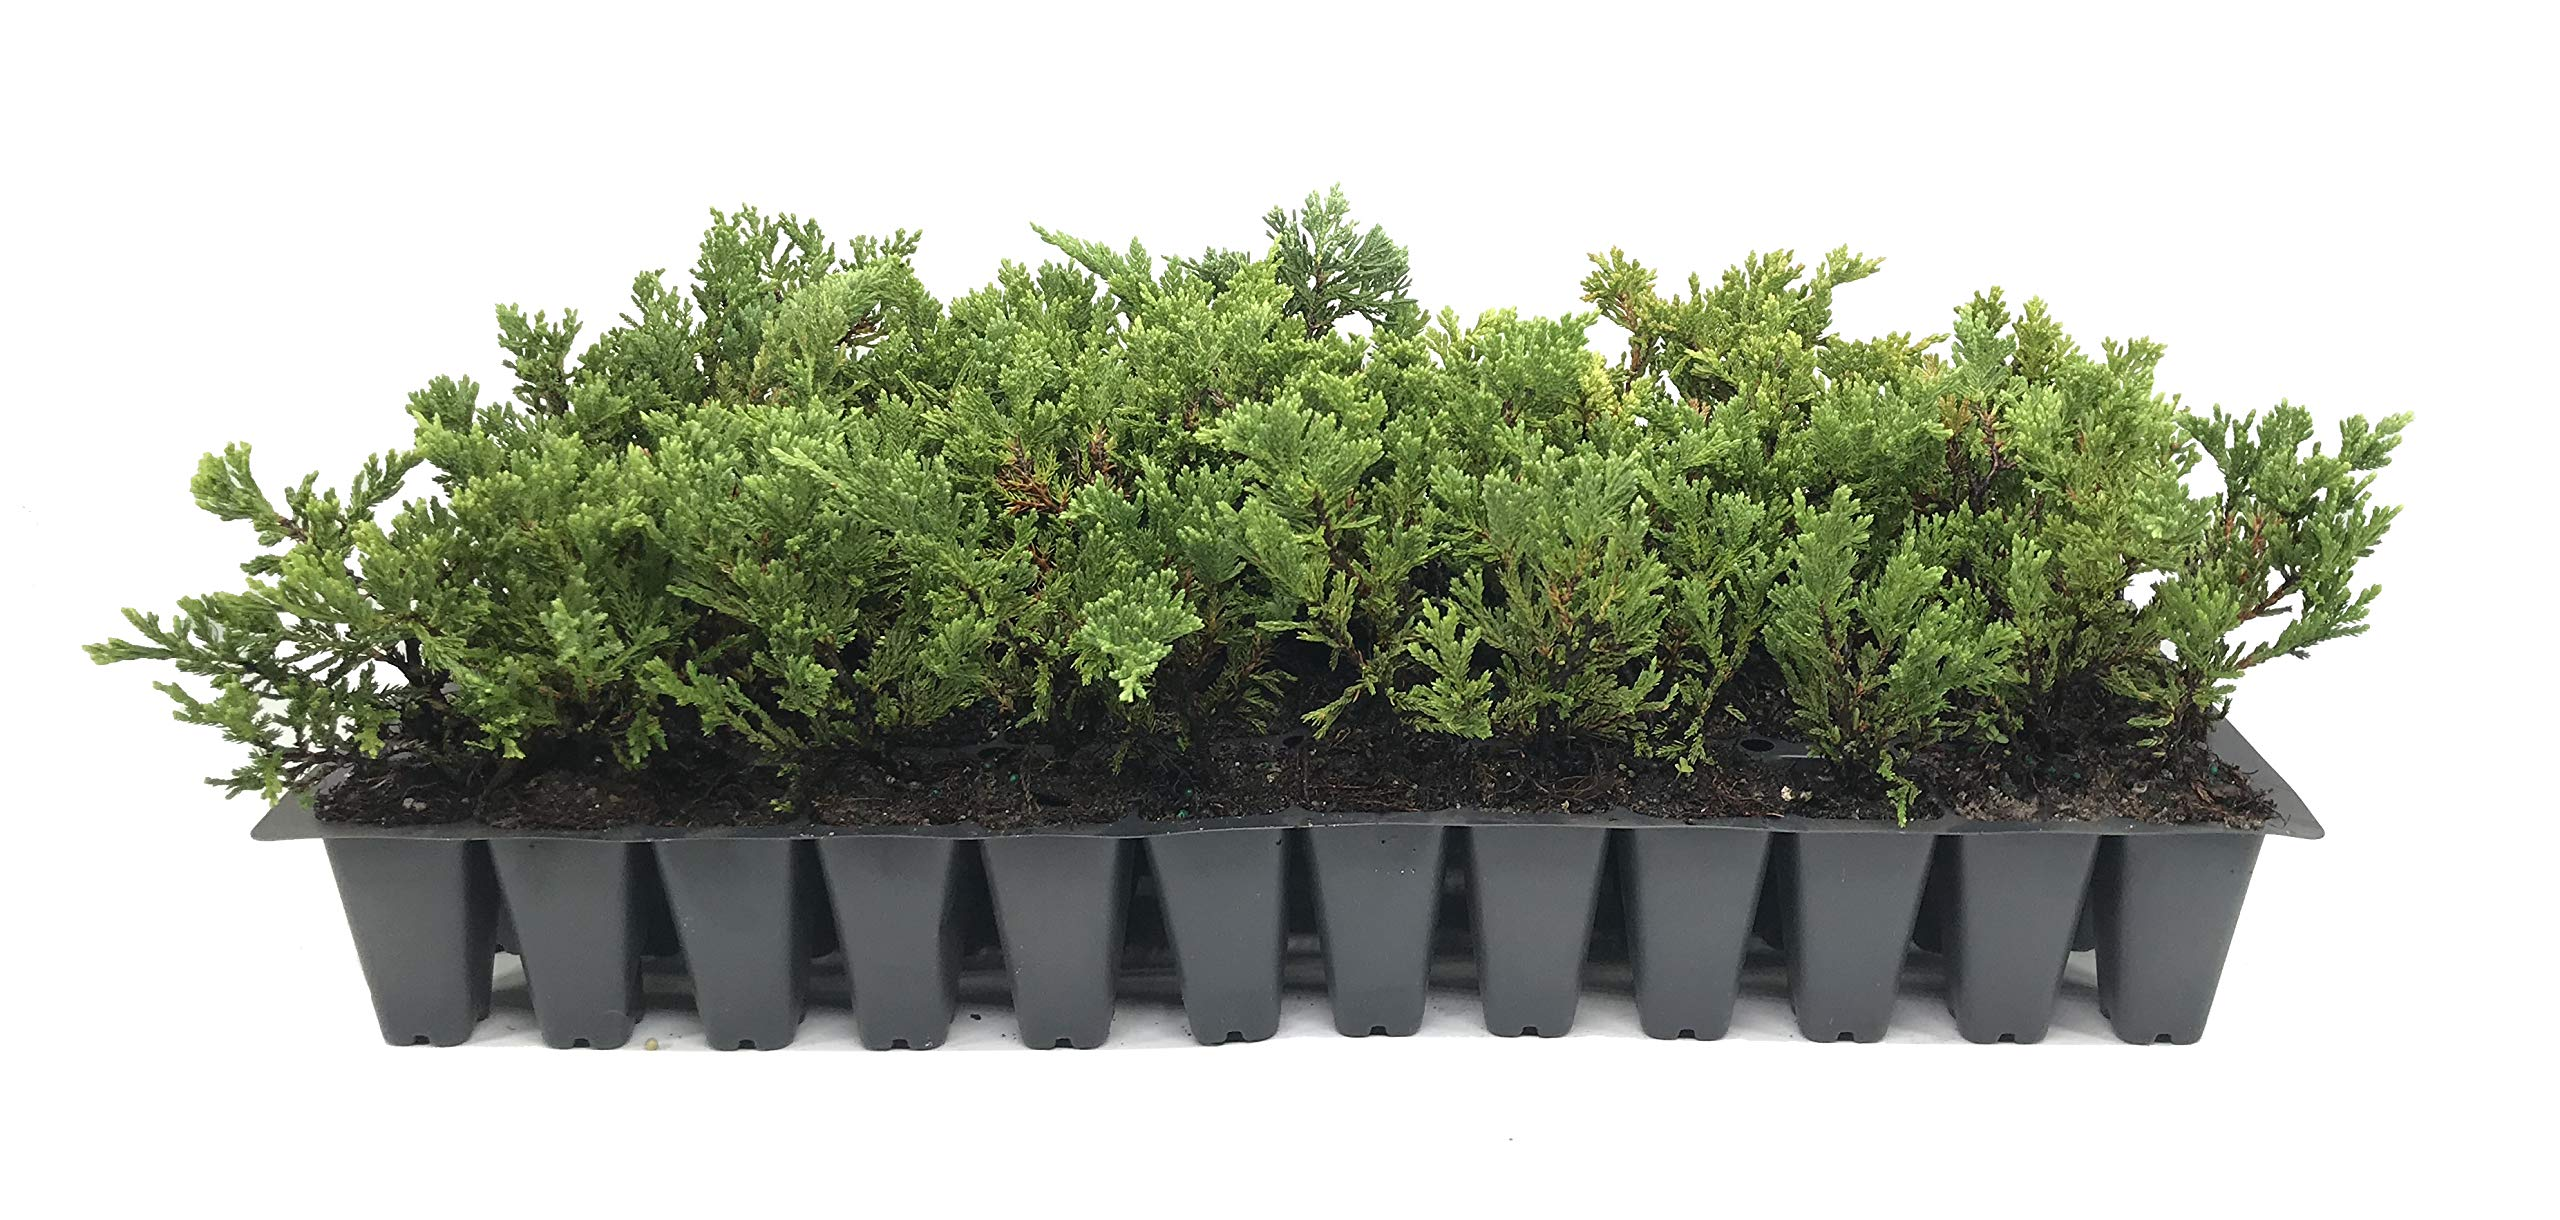 Prince of Wales Juniper - 10 Live Plants - Drought Tolerant Cold Hardy Evergreen Ground Cover by Florida Foliage